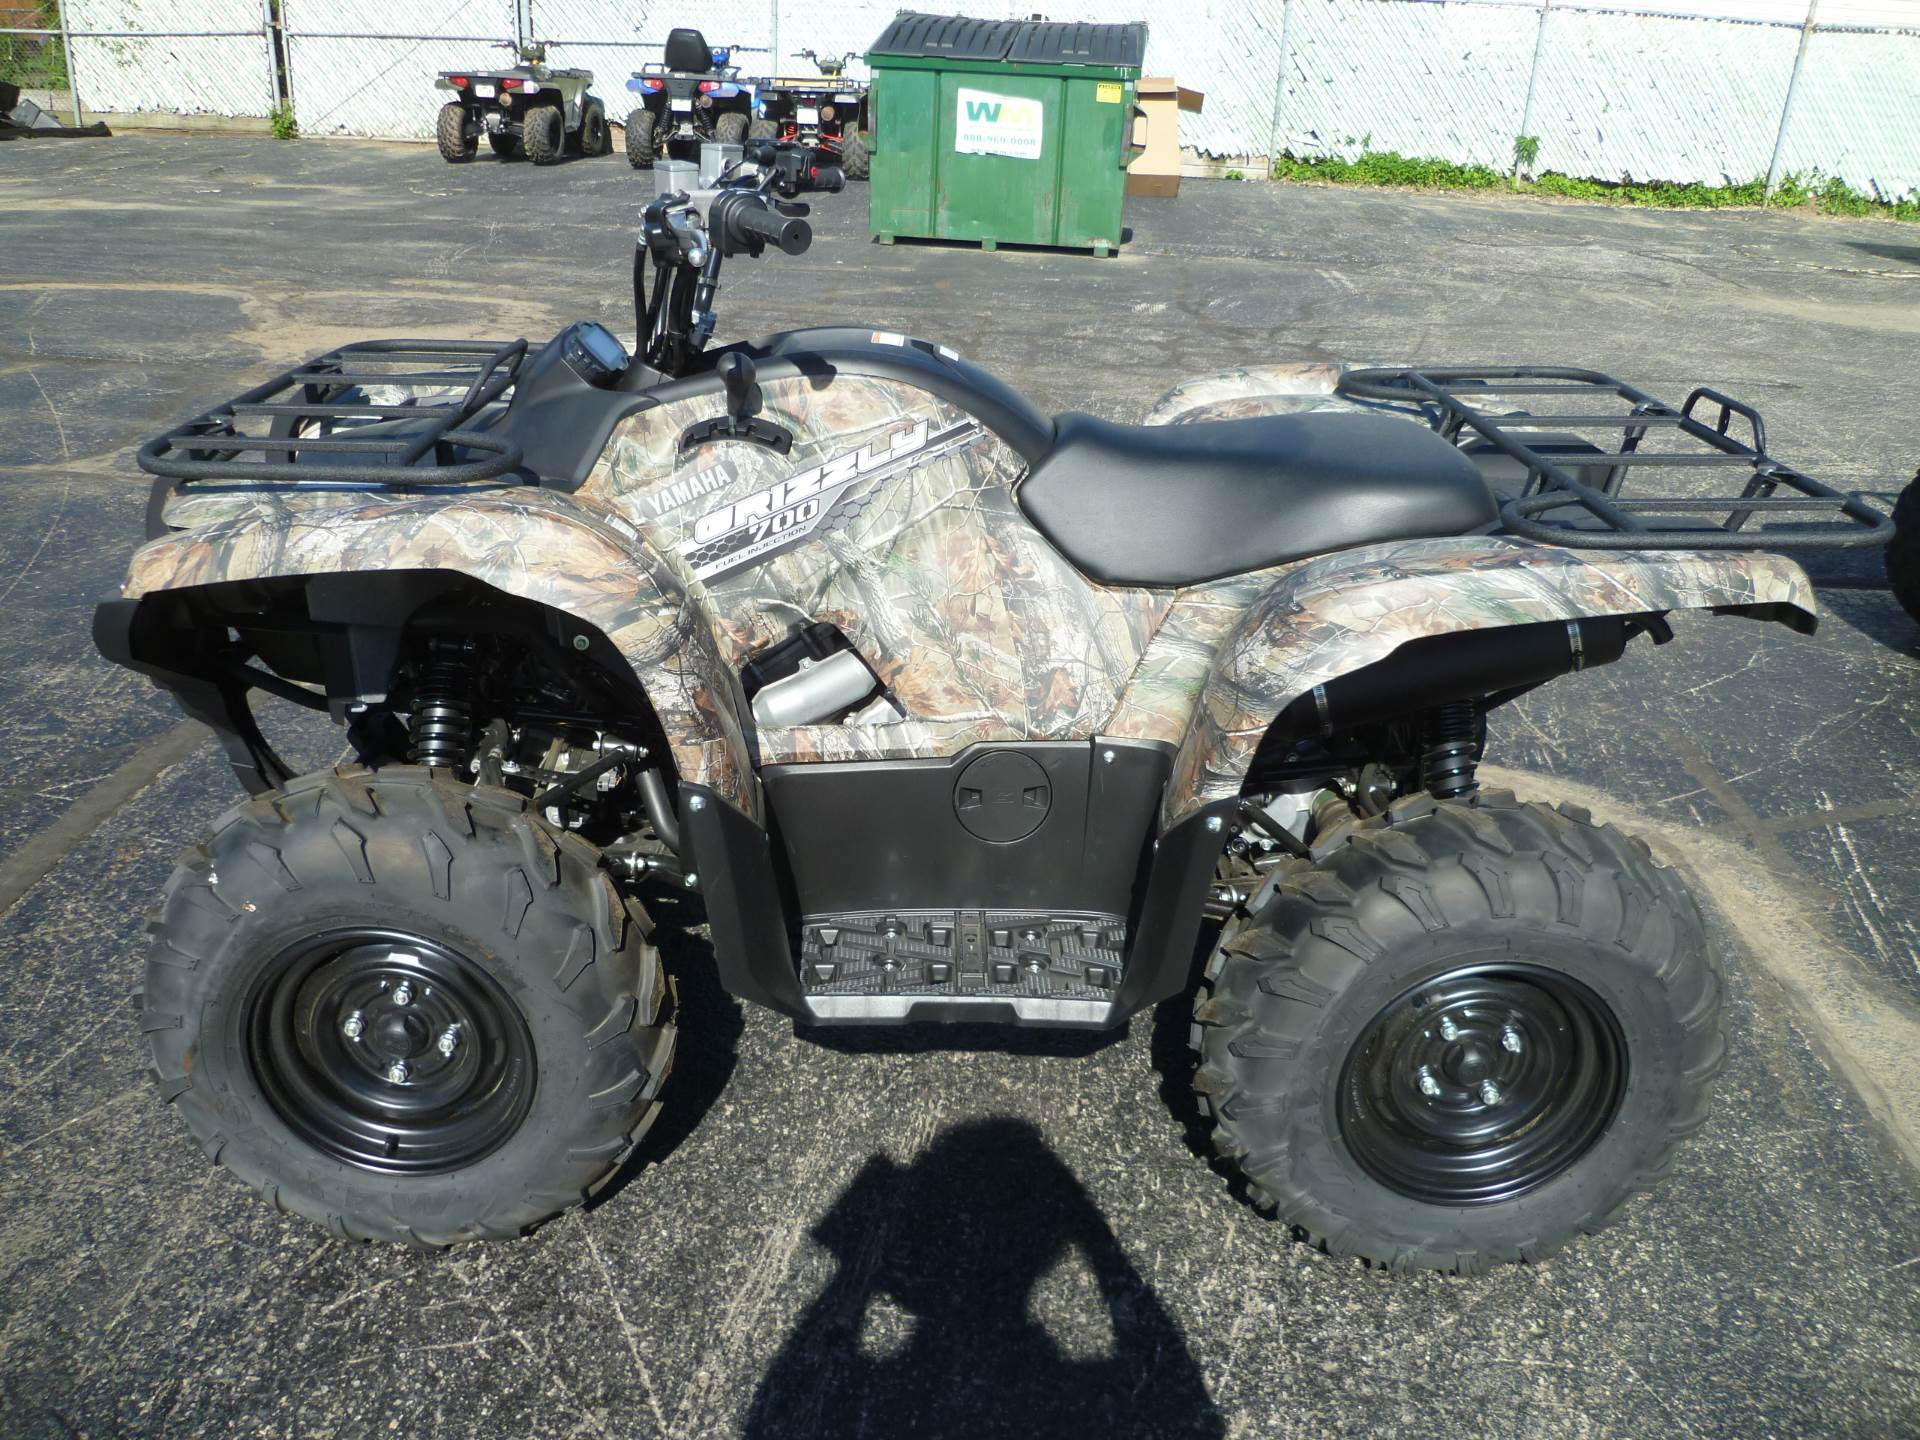 2014 yamaha grizzly 700 fi auto 4x4 for sale for 2014 yamaha grizzly 700 for sale